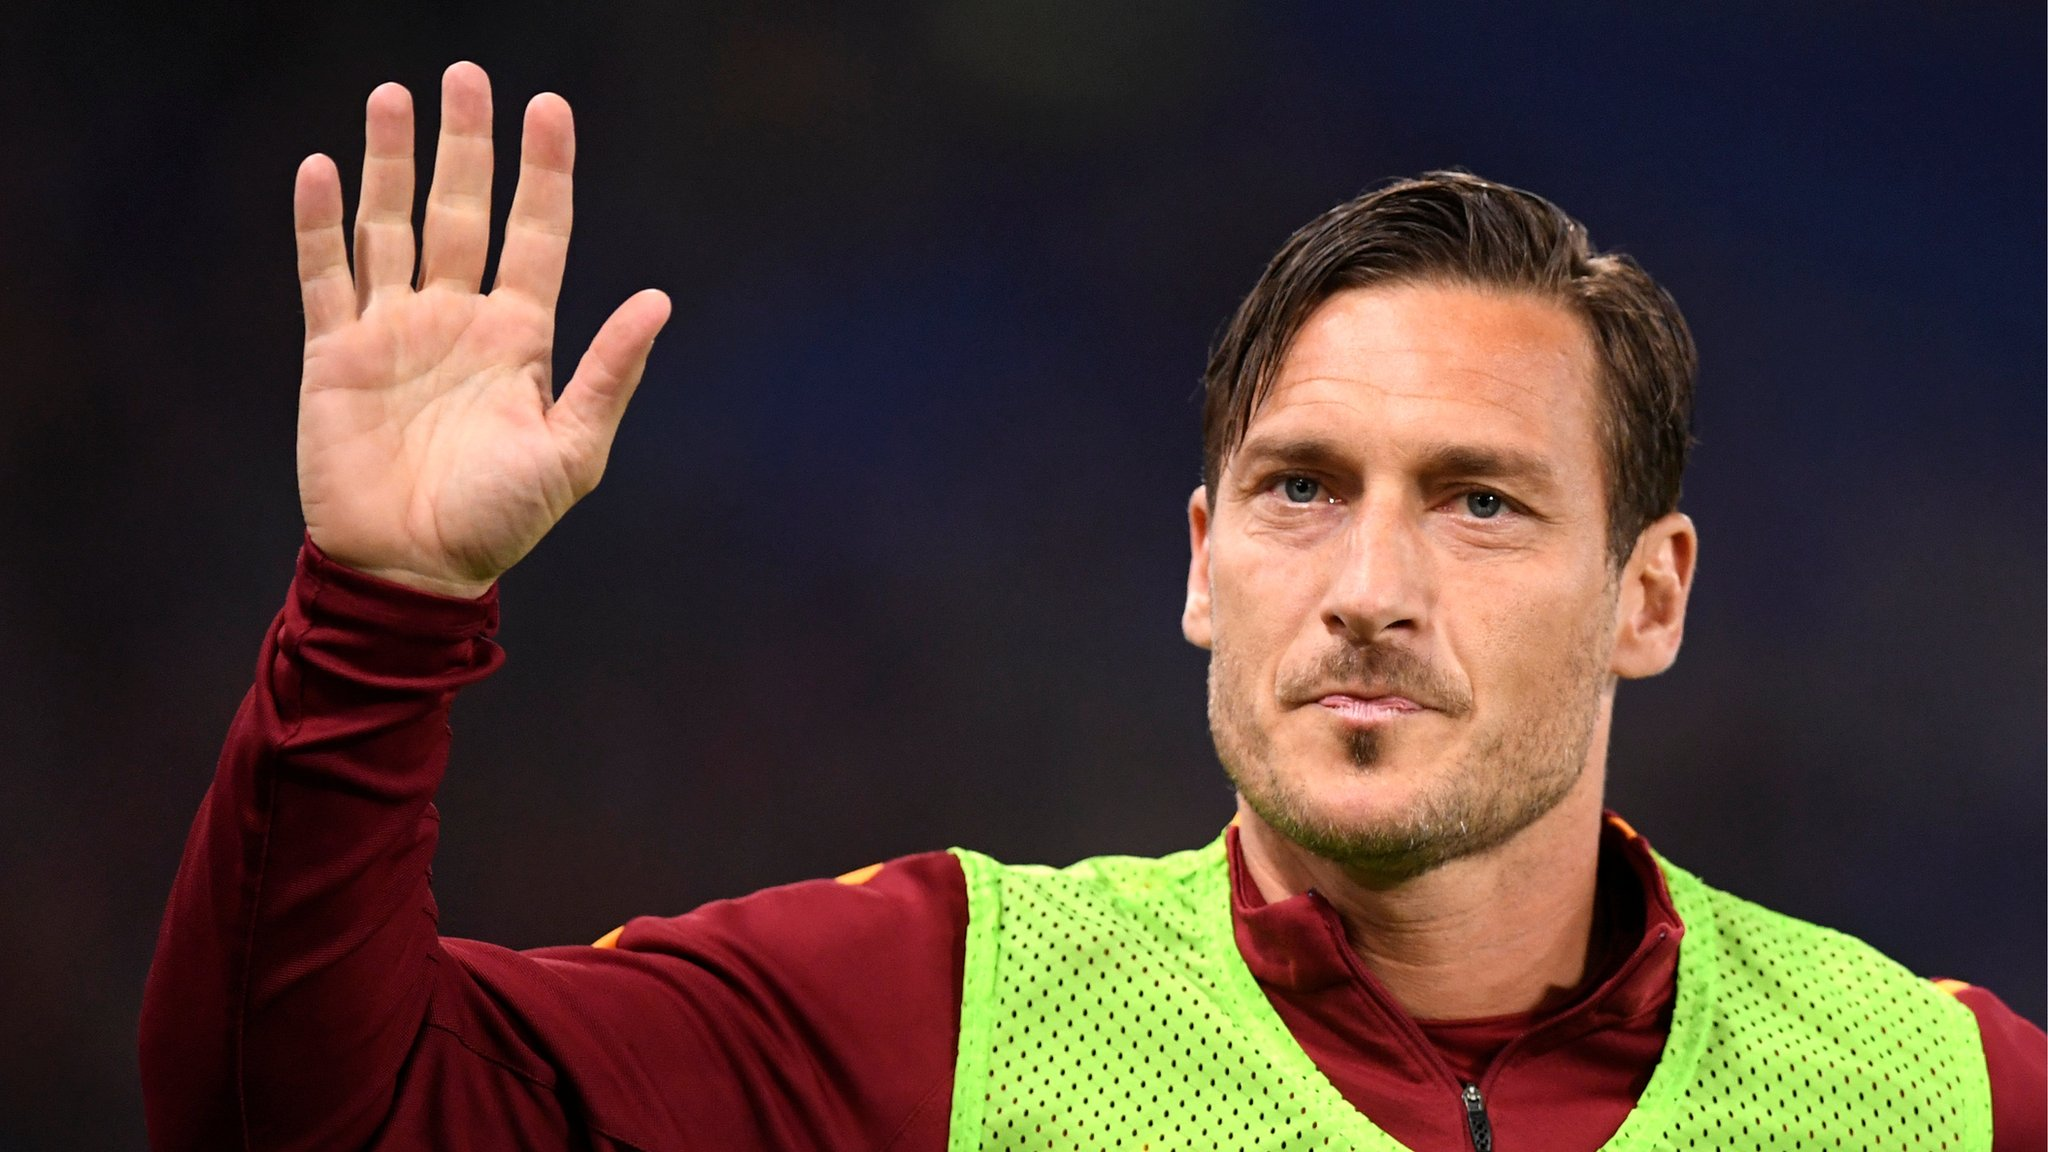 Totti to play a 'large portion' of final match against Genoa